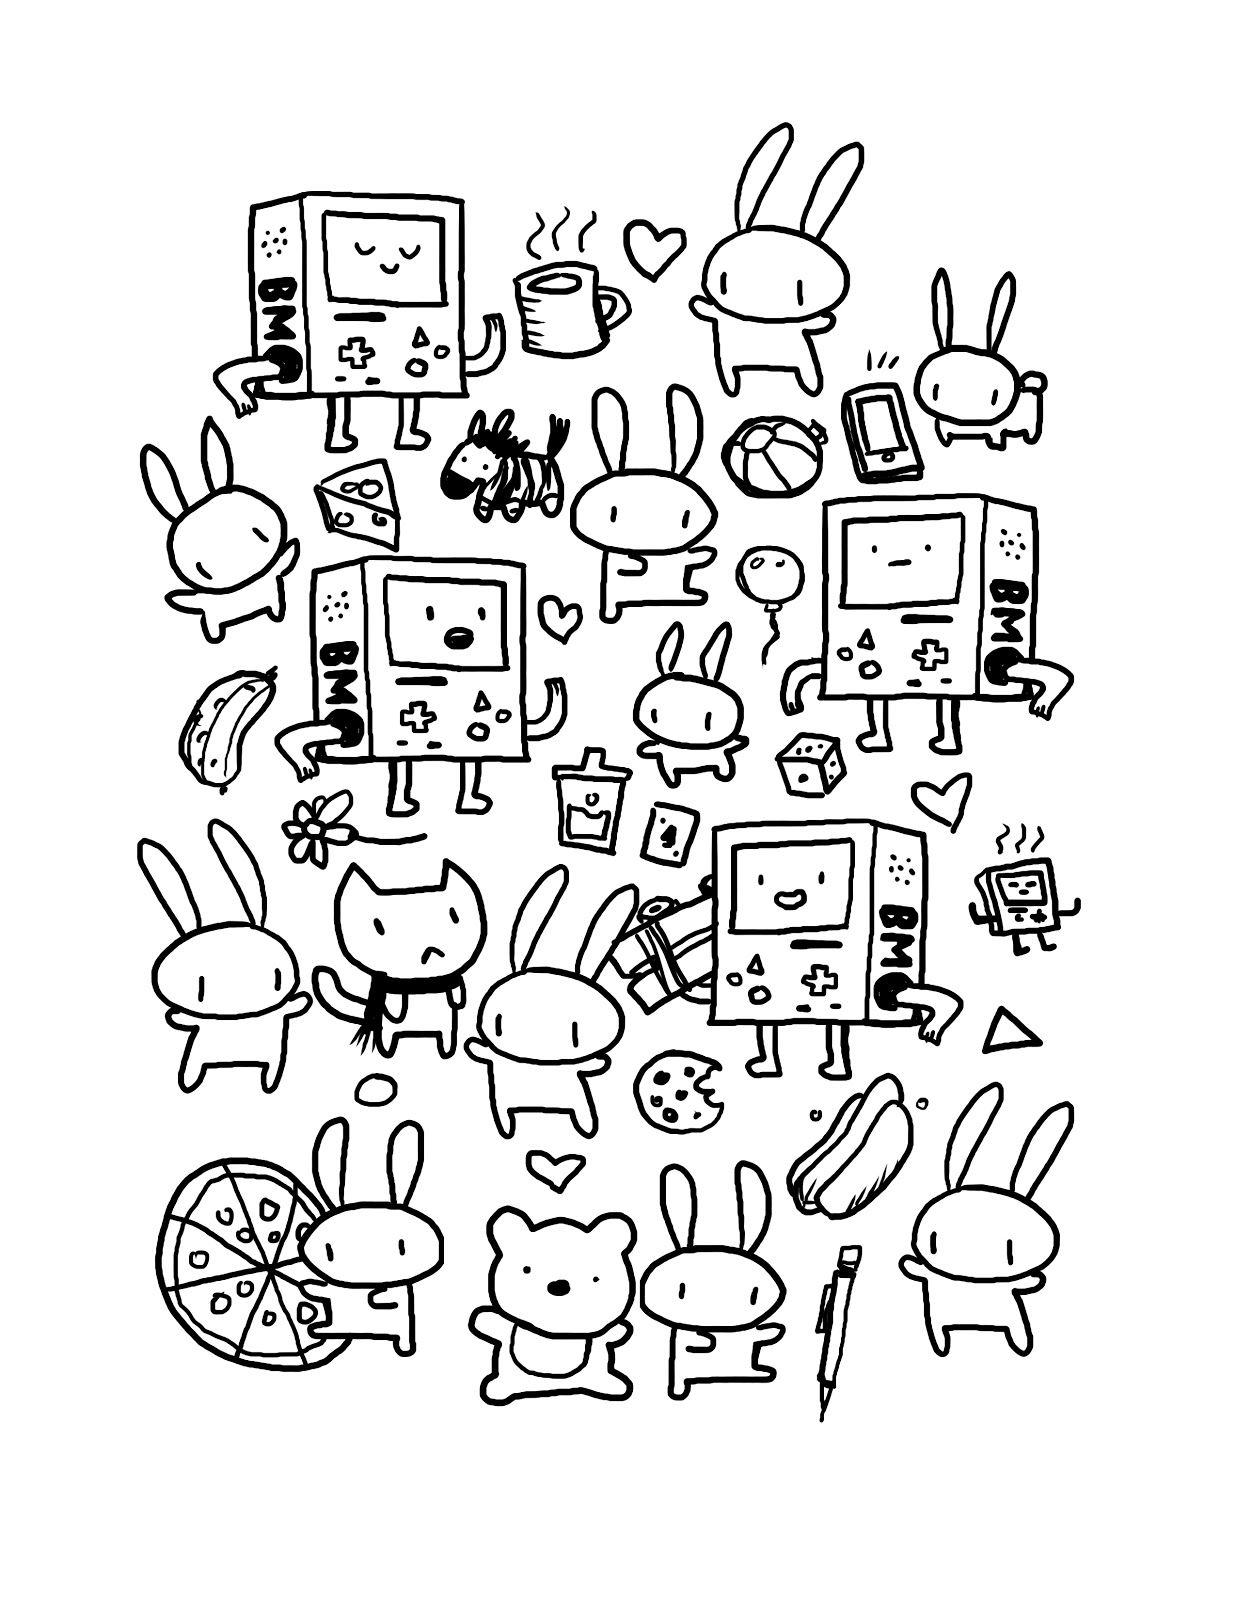 doodle coloring pages doodle coloring pages by twisted tail thehungryjpegcom coloring pages doodle